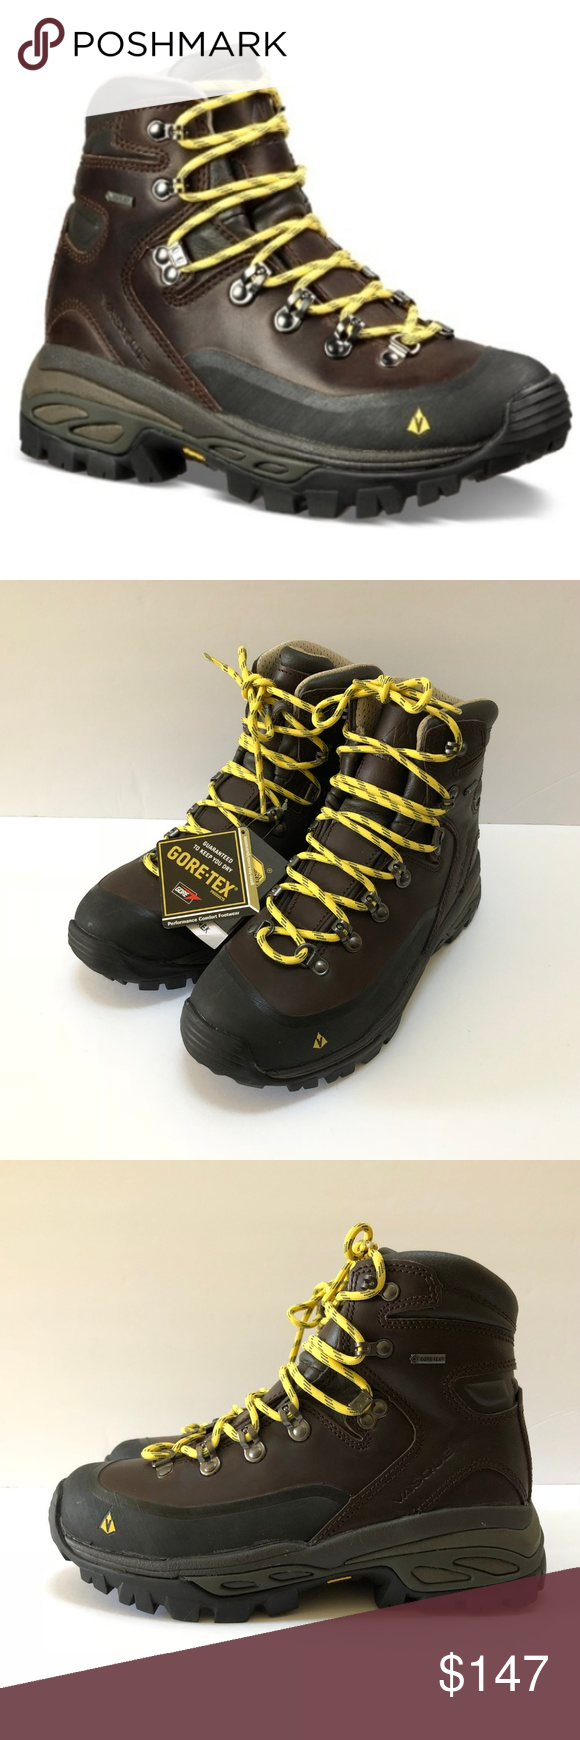 a9e141935bb0 NWT Vasque Leather Hiking Boots Sz 8 Eriksson GTX NEW Vasque Leather Trail  Hiking Boots